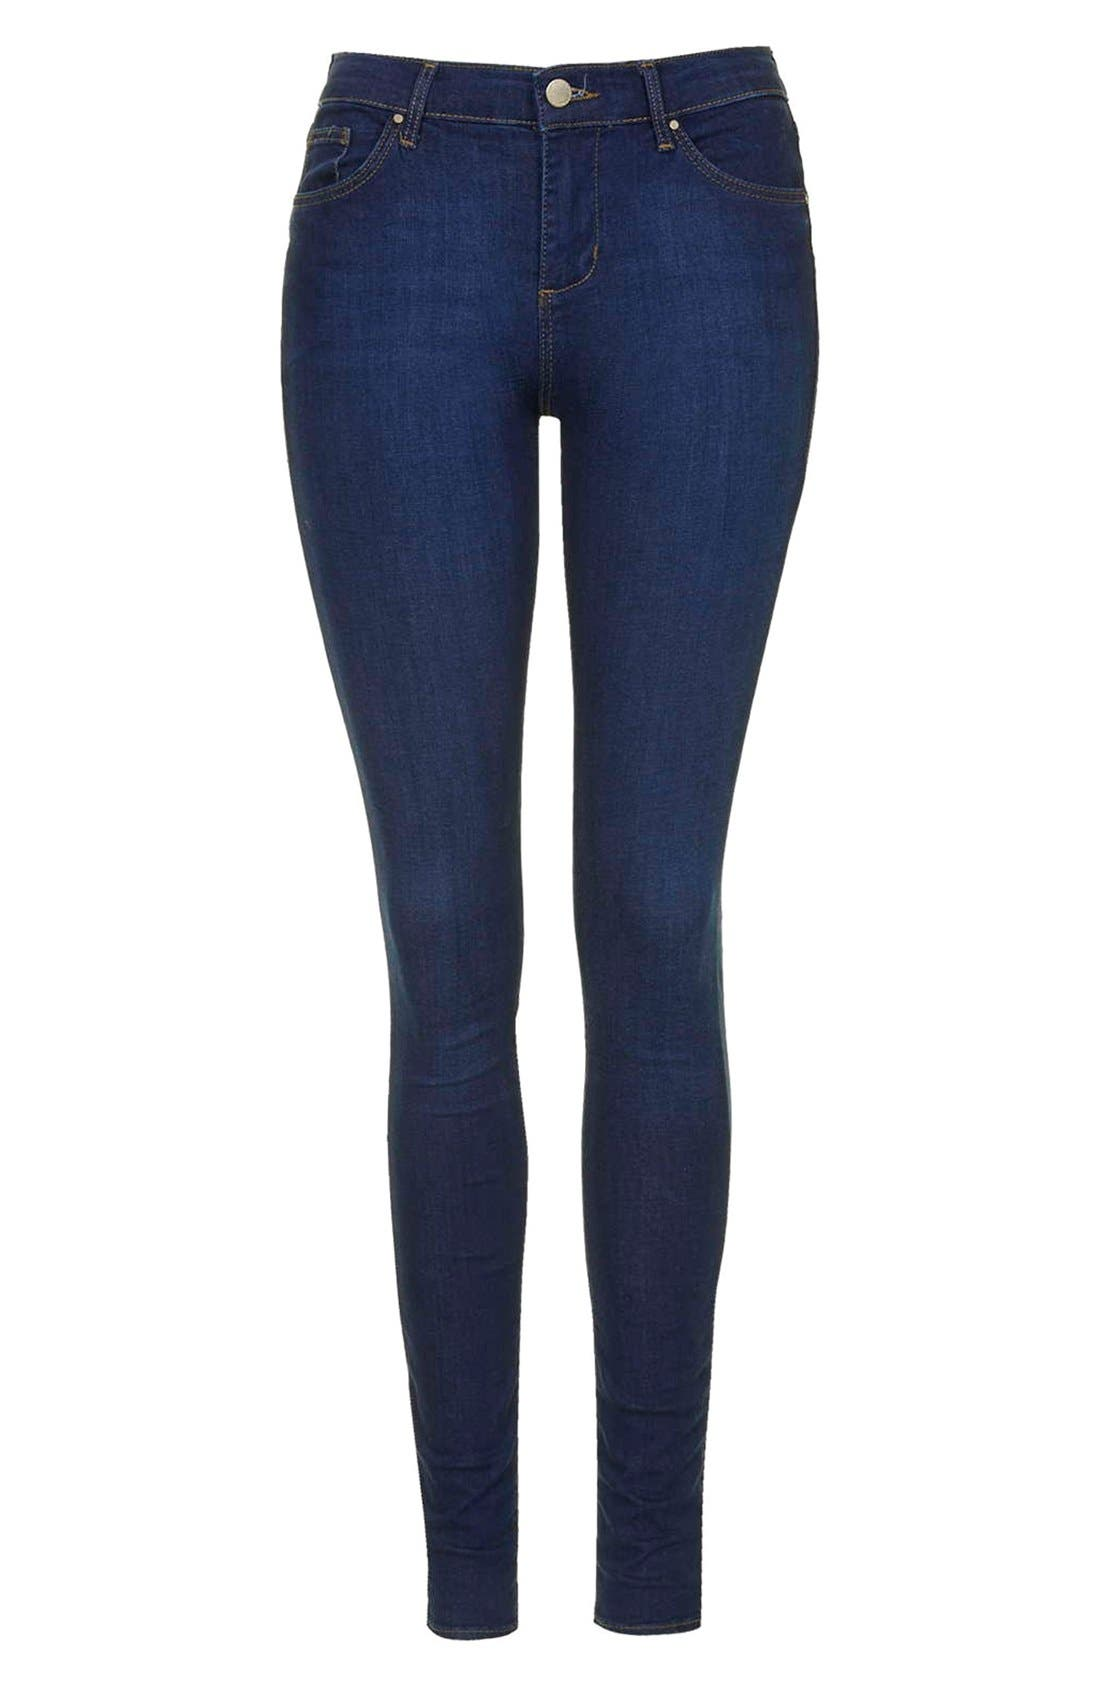 TOPSHOP, Moto 'Leigh' Ankle Skinny Jeans, Alternate thumbnail 2, color, 410